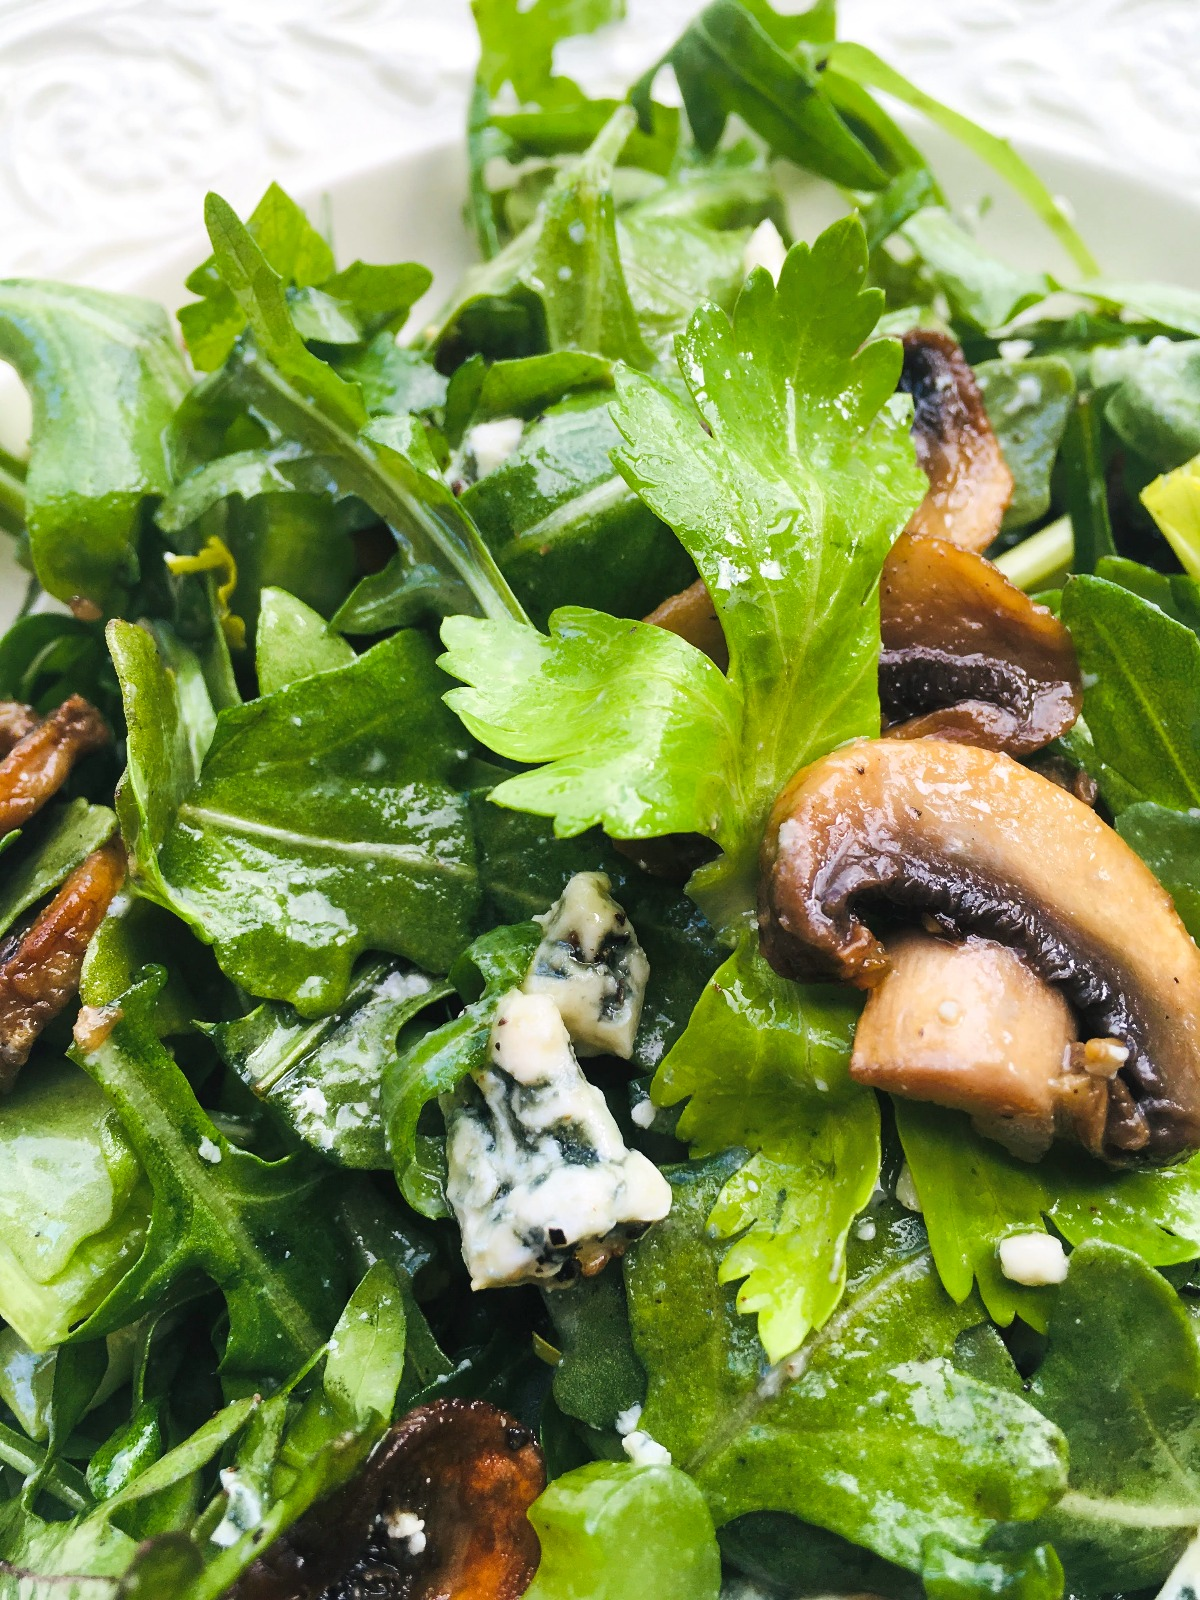 arugula and celery salad with roasted mushrooms and blue cheese